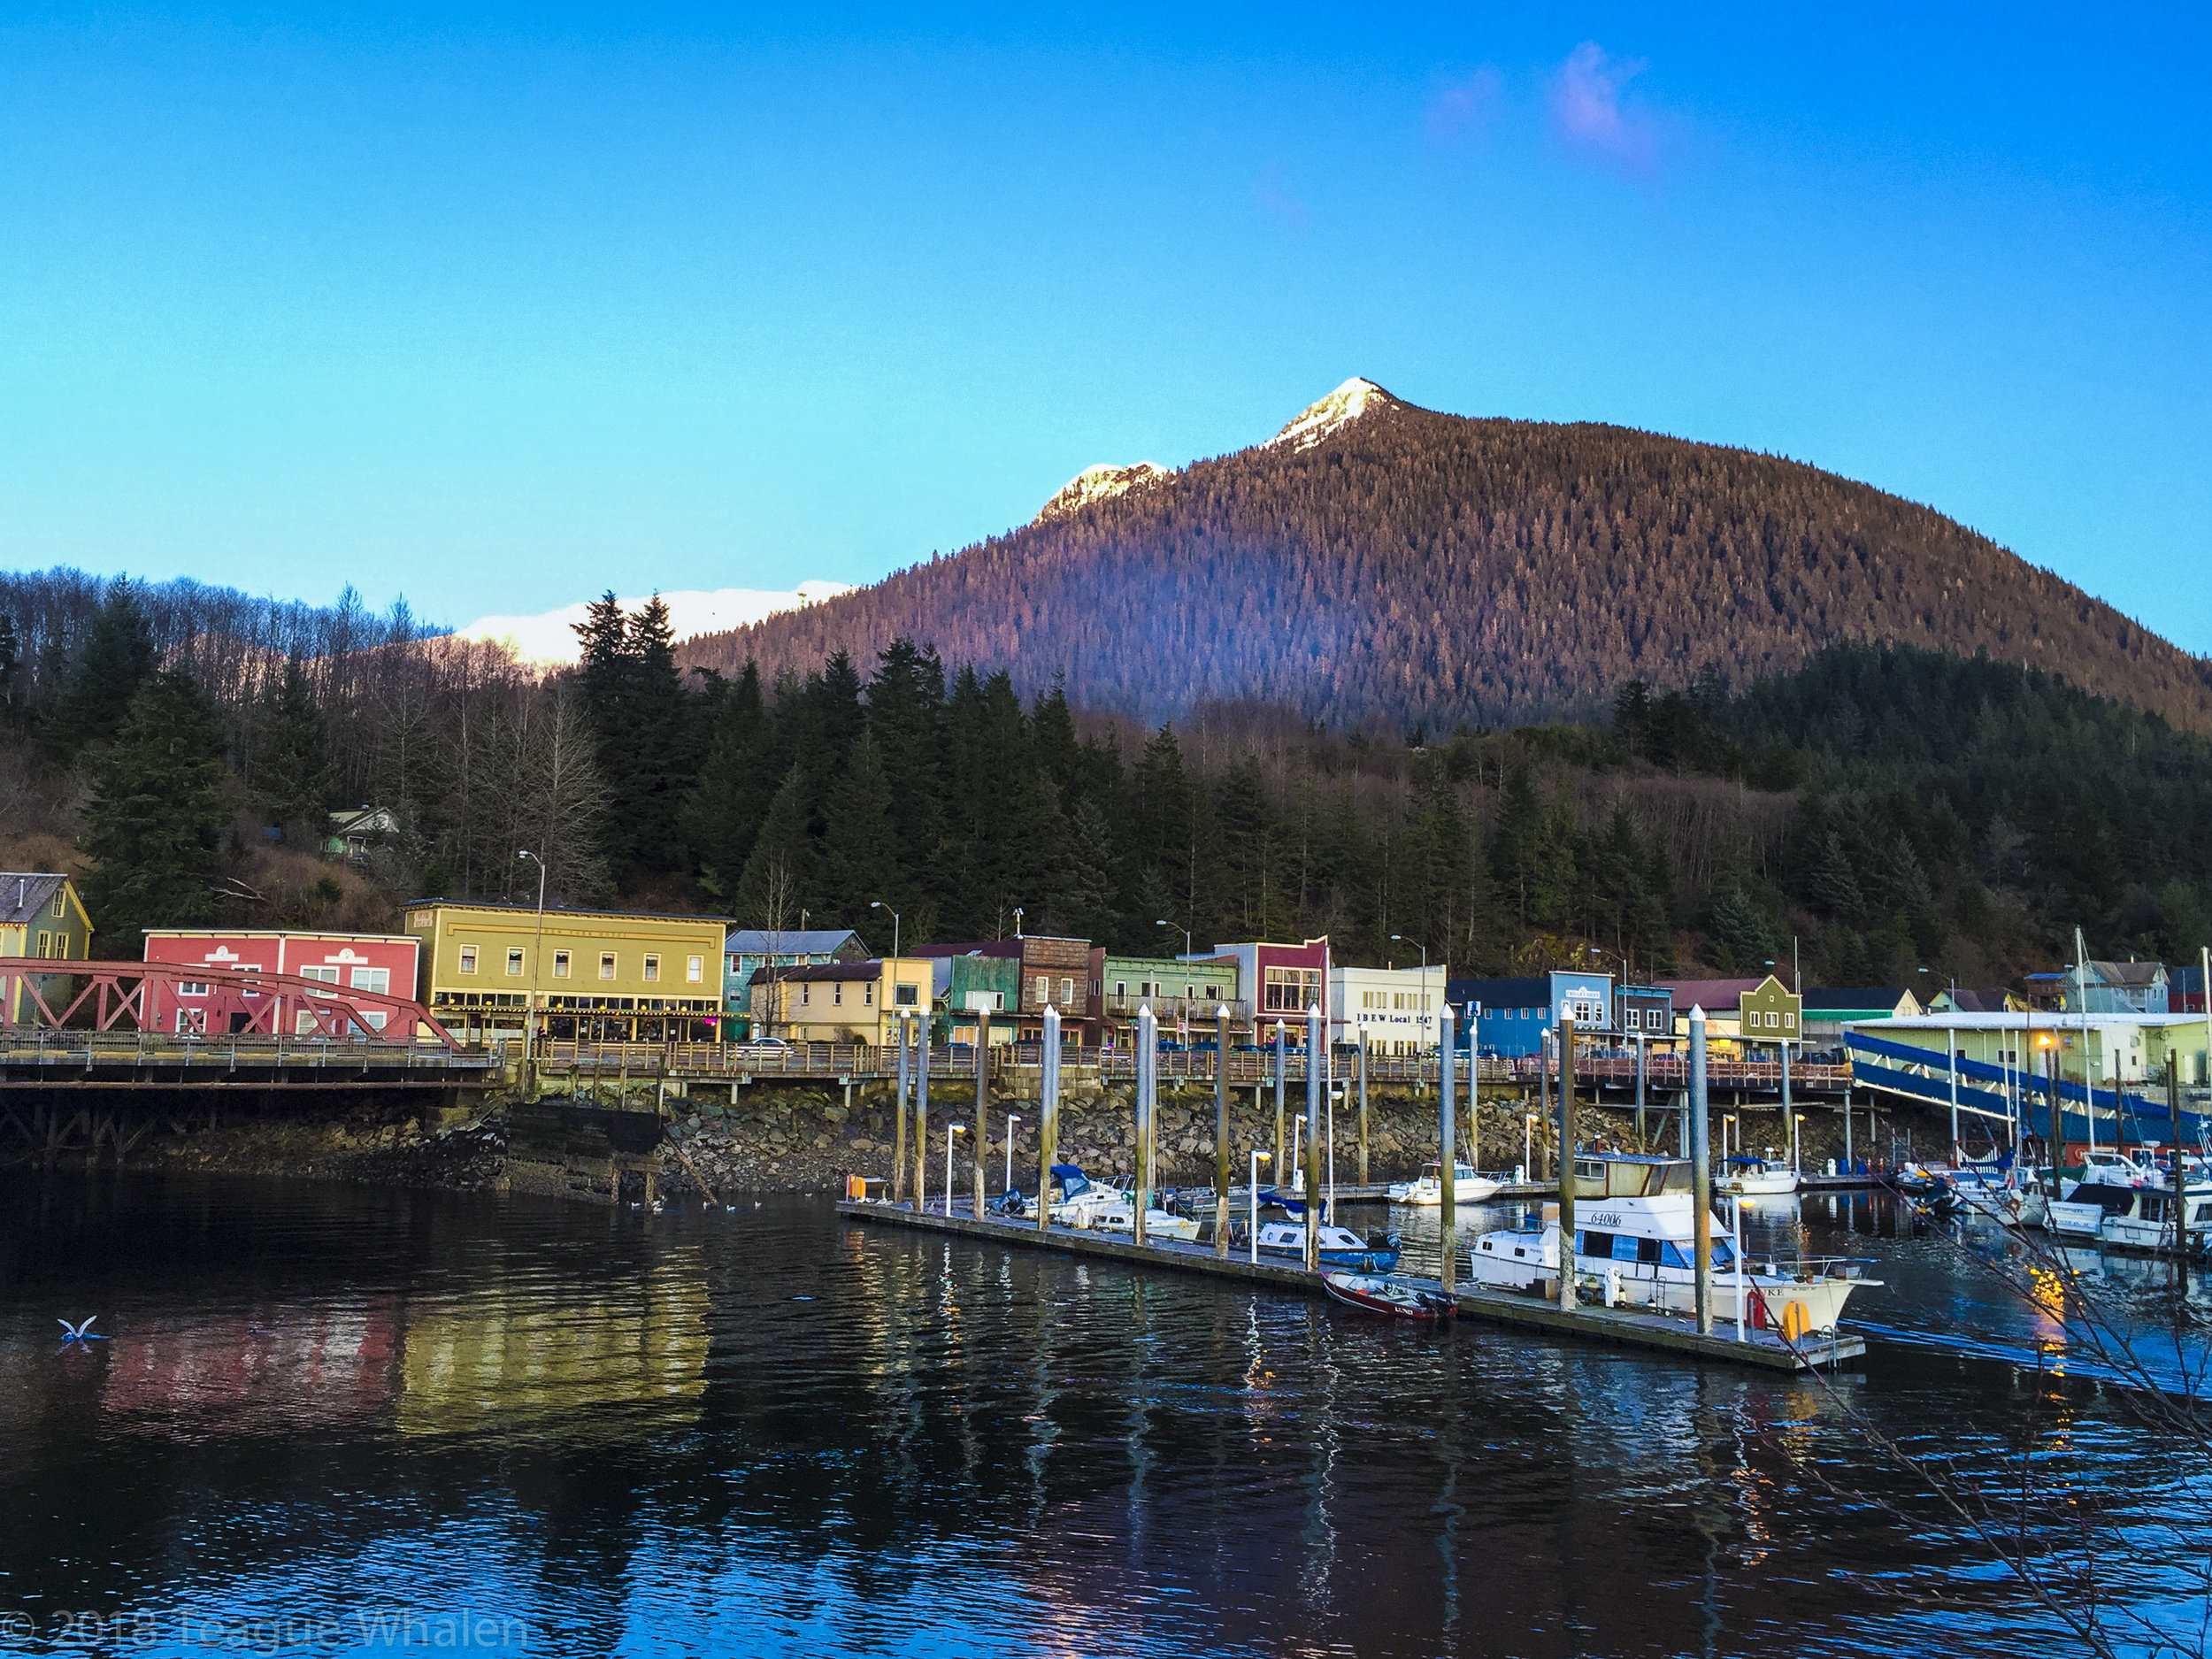 Ketchikan, Alaska's Thomas Basin and Deer Mountain